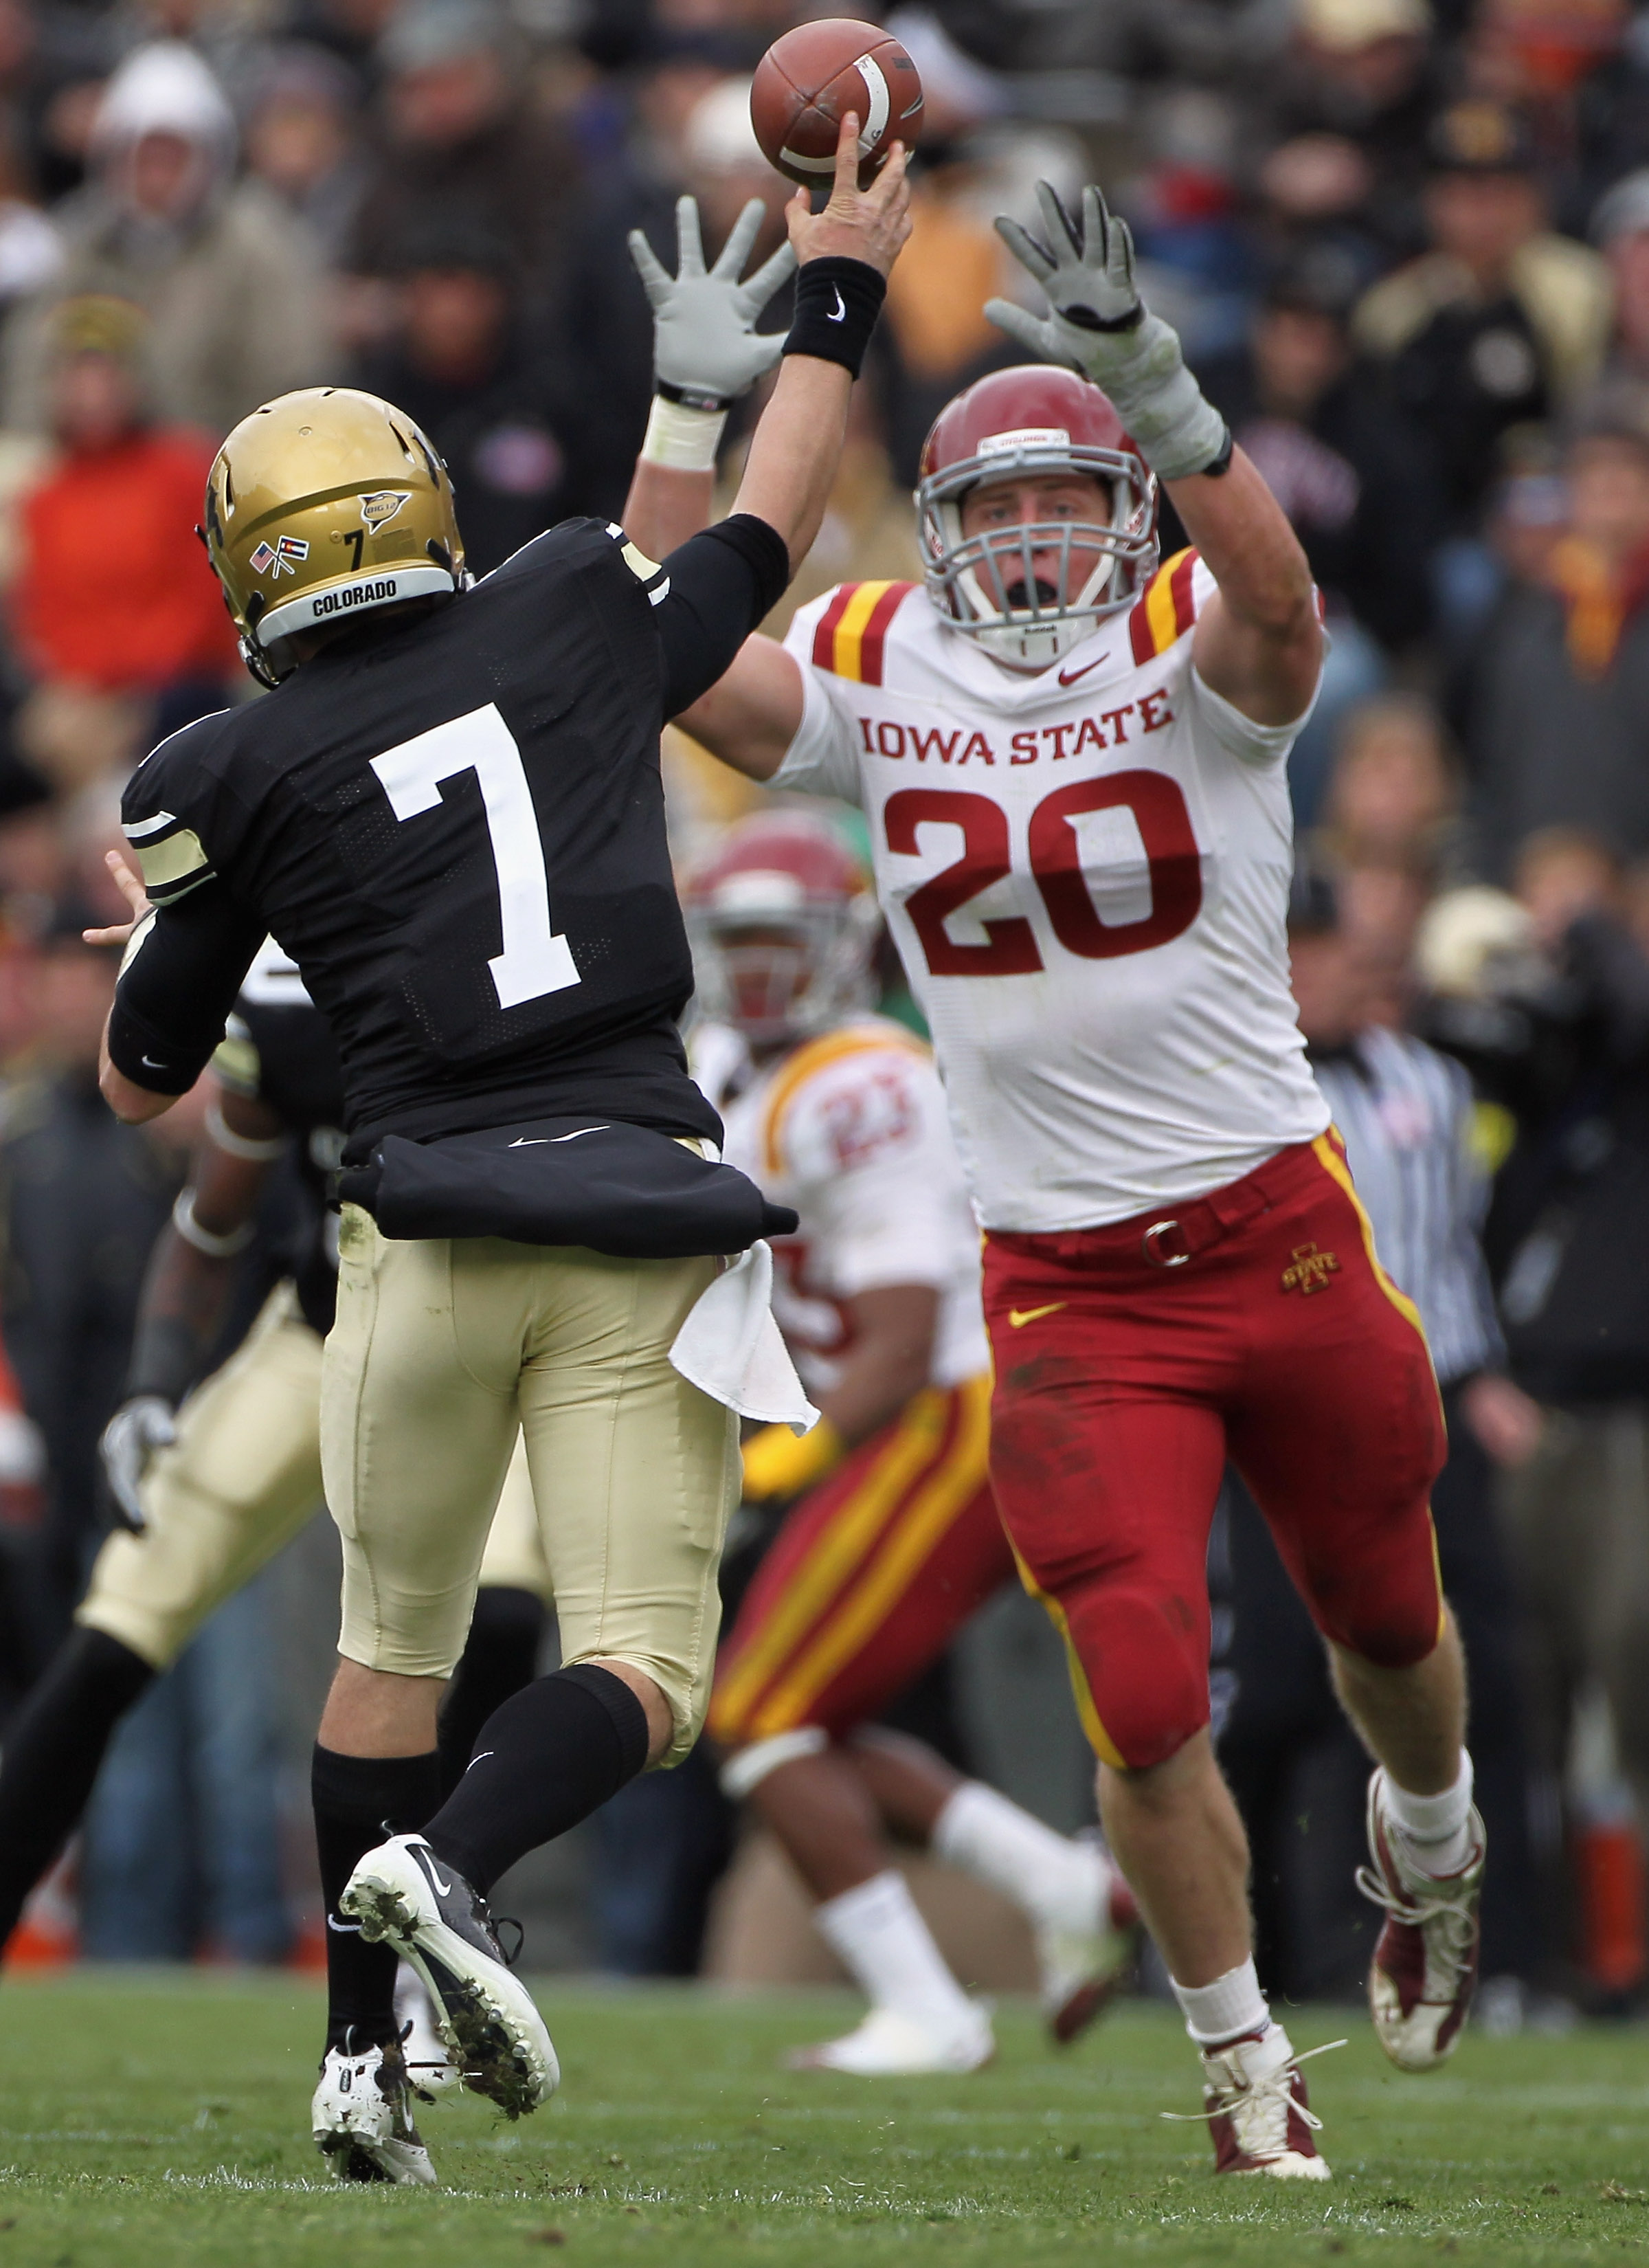 BOULDER, CO - NOVEMBER 13:  Quarterback Cody Hawkins #7 of the Colorado Buffaloes delivers a pass and has it knocked down by Jake Knott #20 of the Iowa State Cyclones at Folsom Field on November 13, 2010 in Boulder, Colorado. Colorado defeated Iowa State